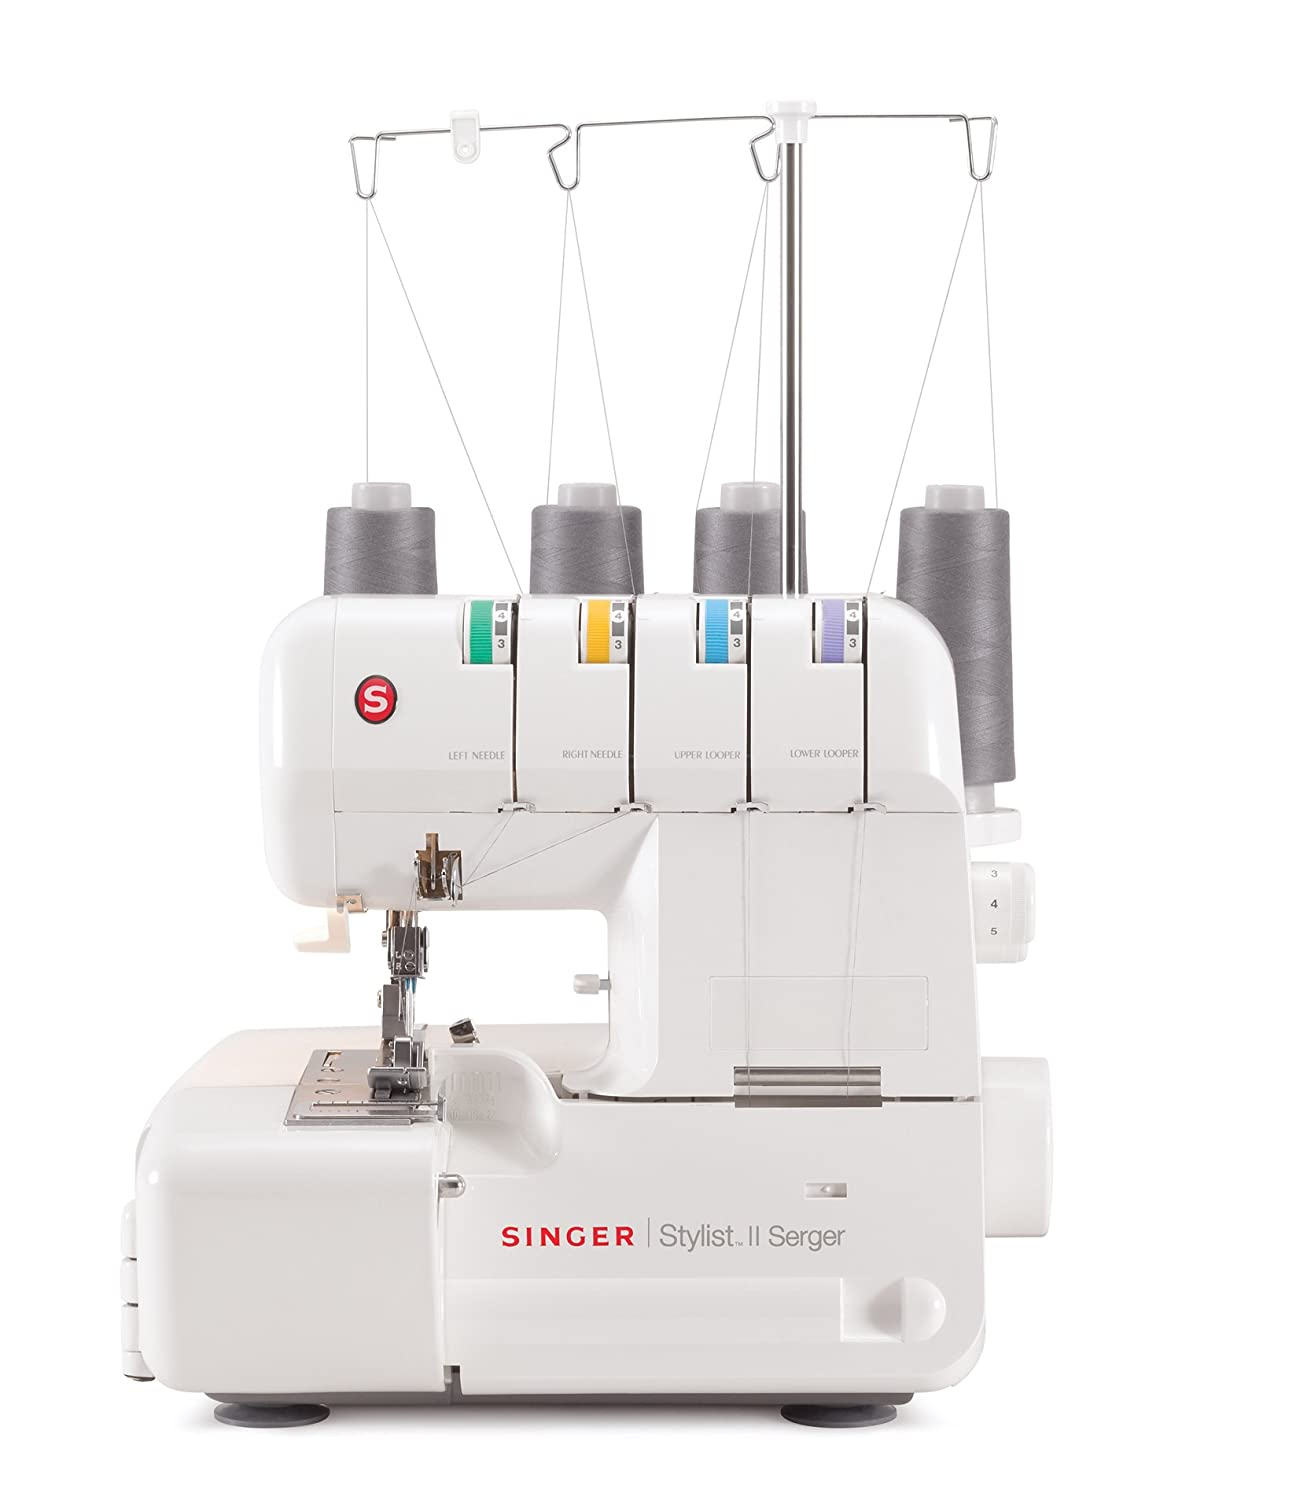 Top 6 Best Serger Sewing Machine (2020 Reviews & Buying Guide) 5